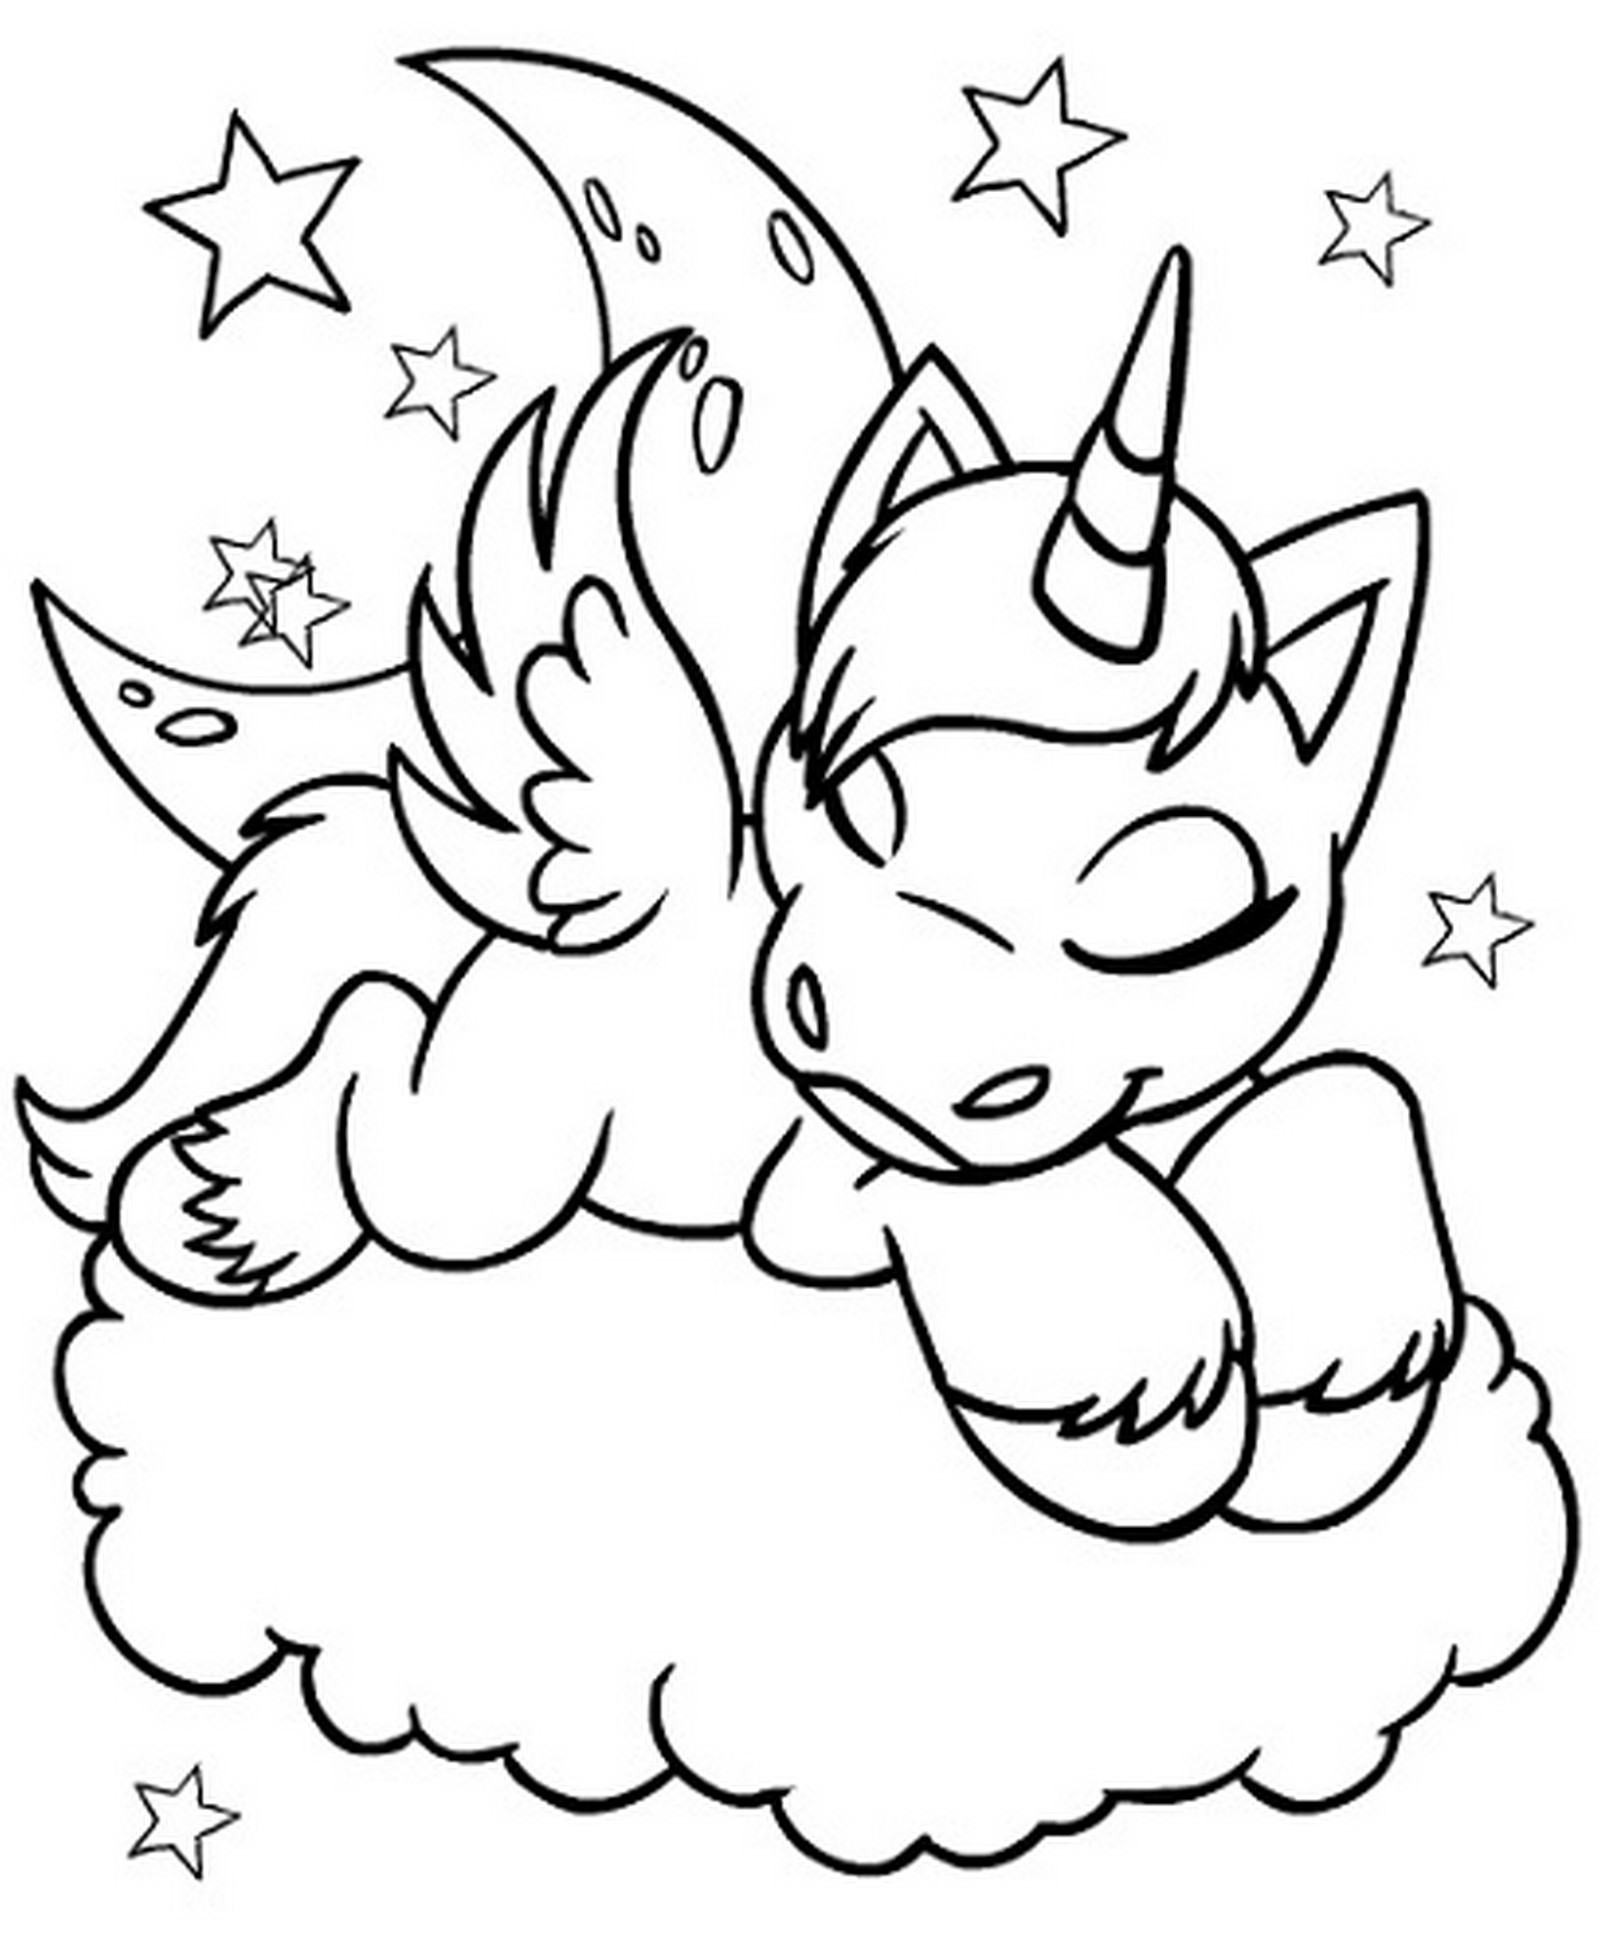 free coloring sheets unicorn 30 best free printable unicorn coloring pages online coloring sheets free unicorn